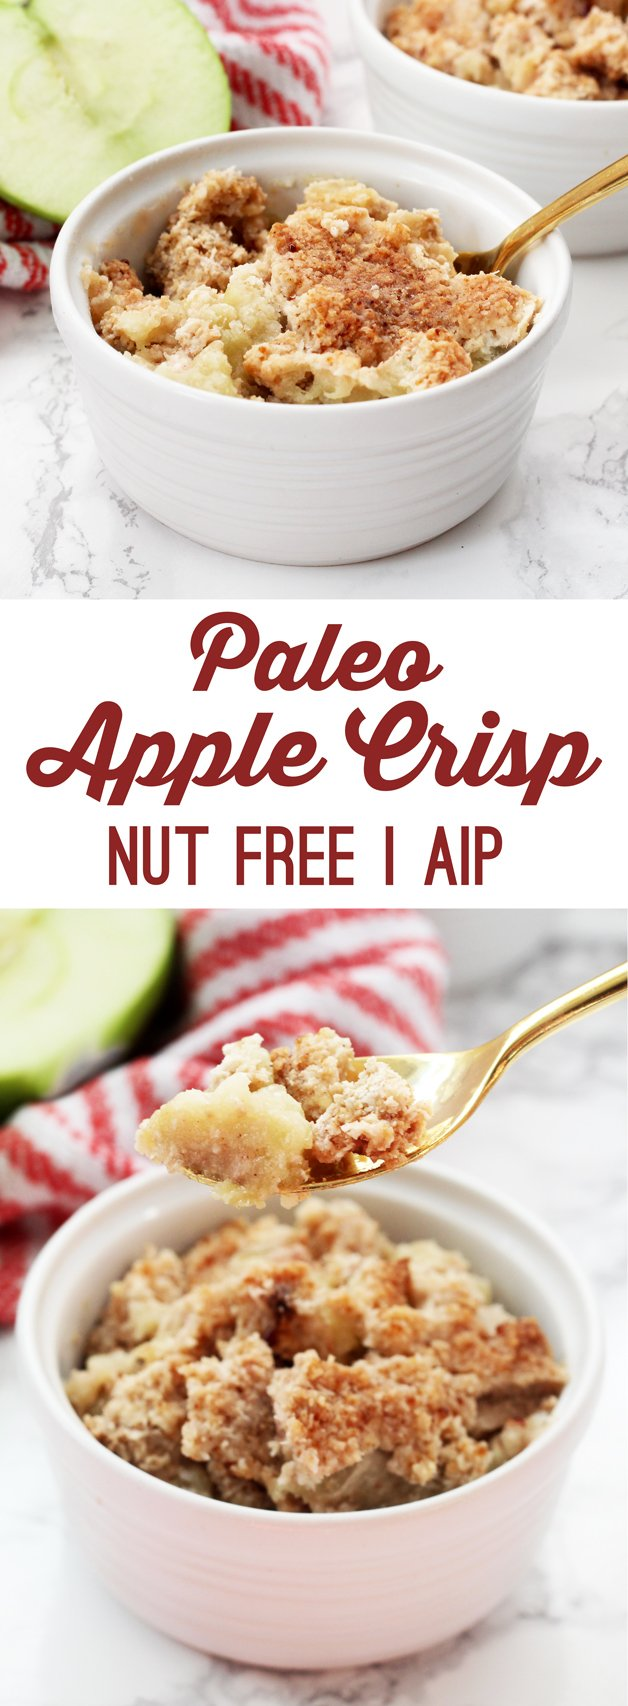 Paleo Apple Crisp (AIP & Nut Free)